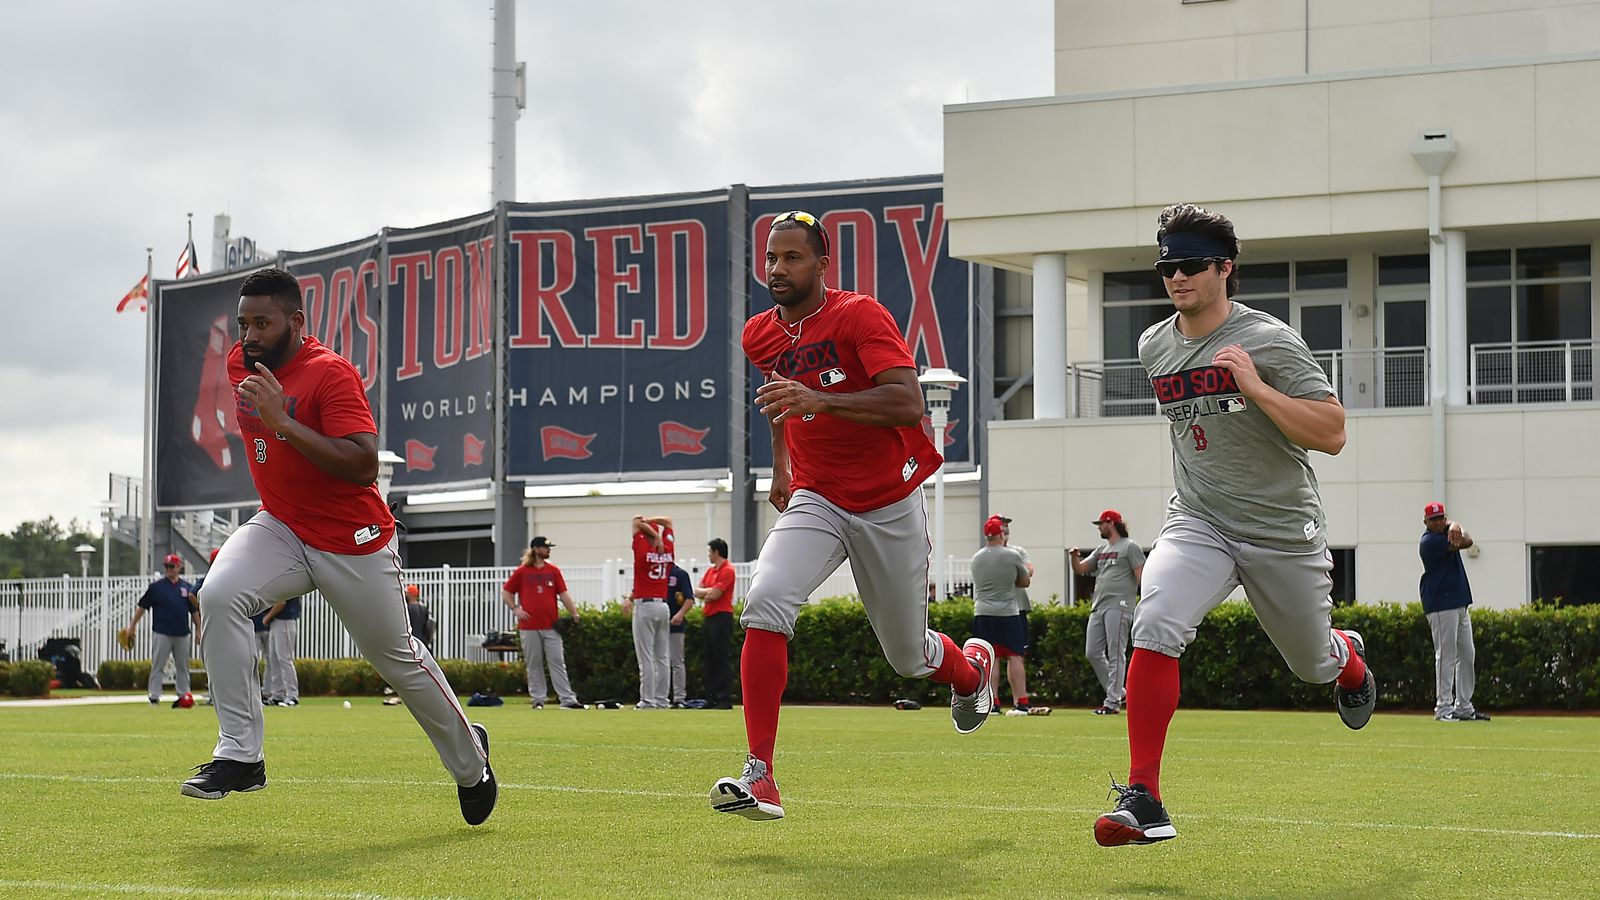 Spring training schedule 2017: Real, live MLB baseball games start Friday